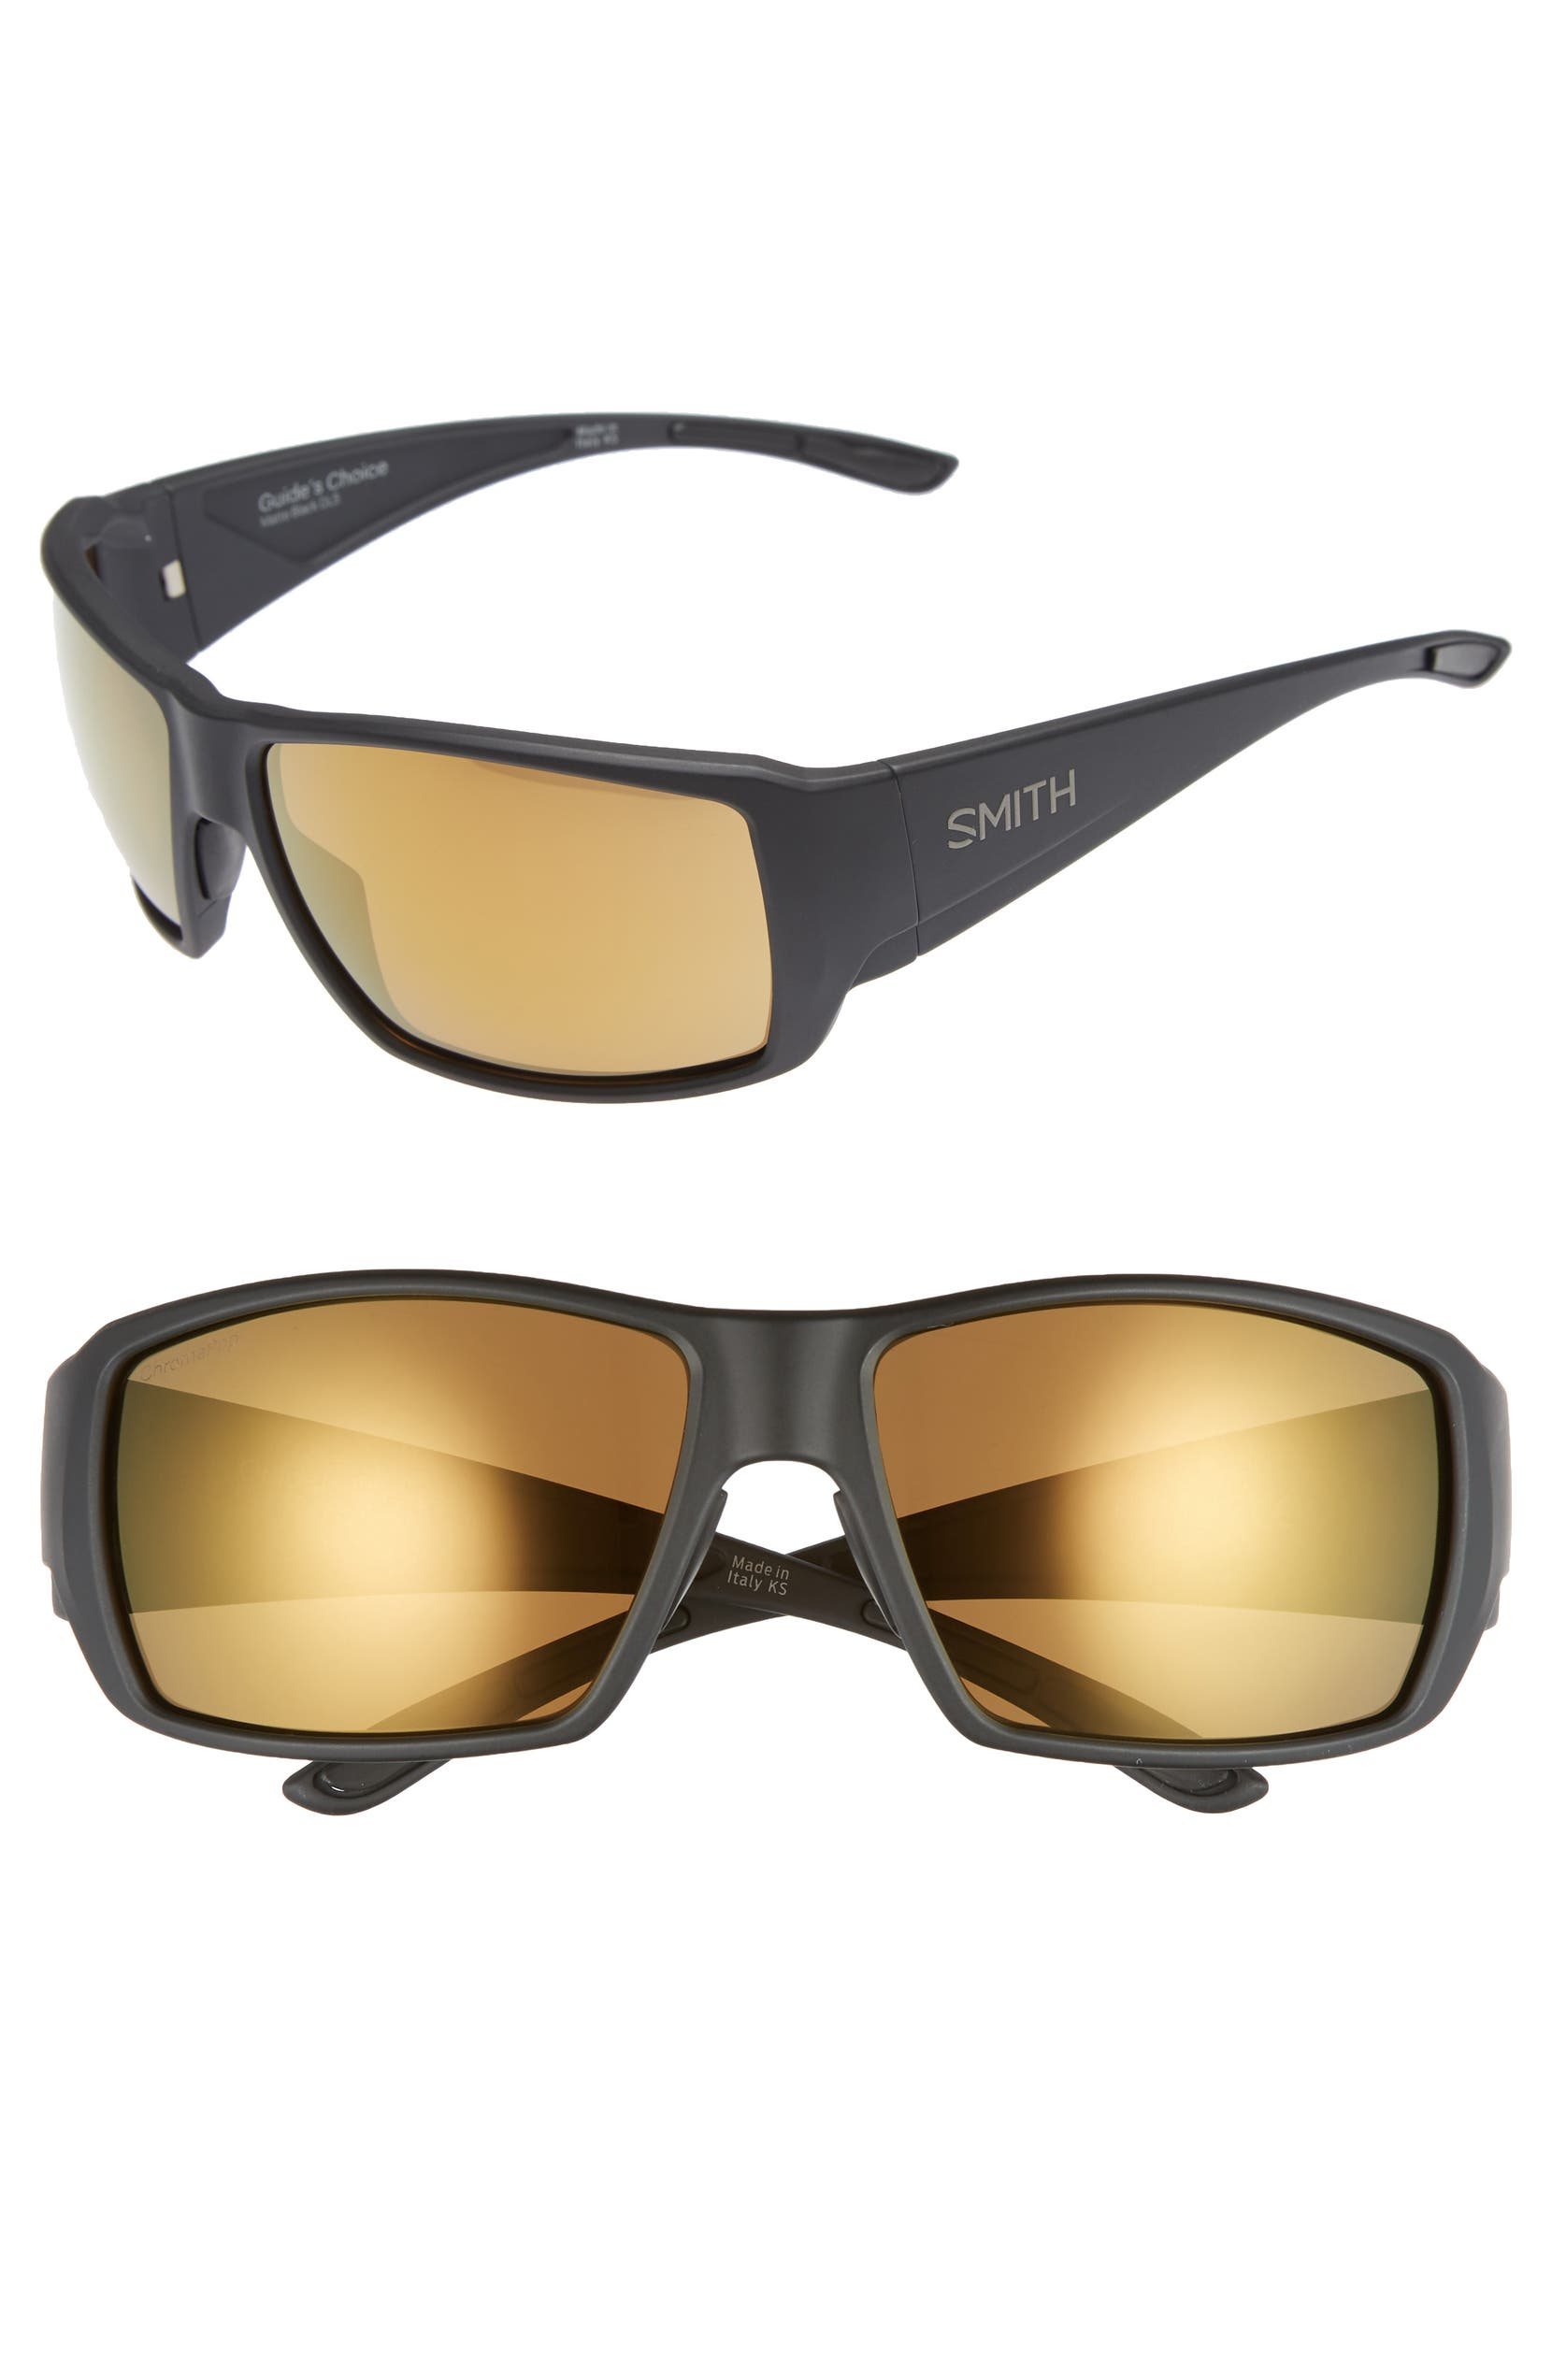 7d891cc1ea5 Smith Guide s Choice 62mm ChromaPop™ Sport Sunglasses